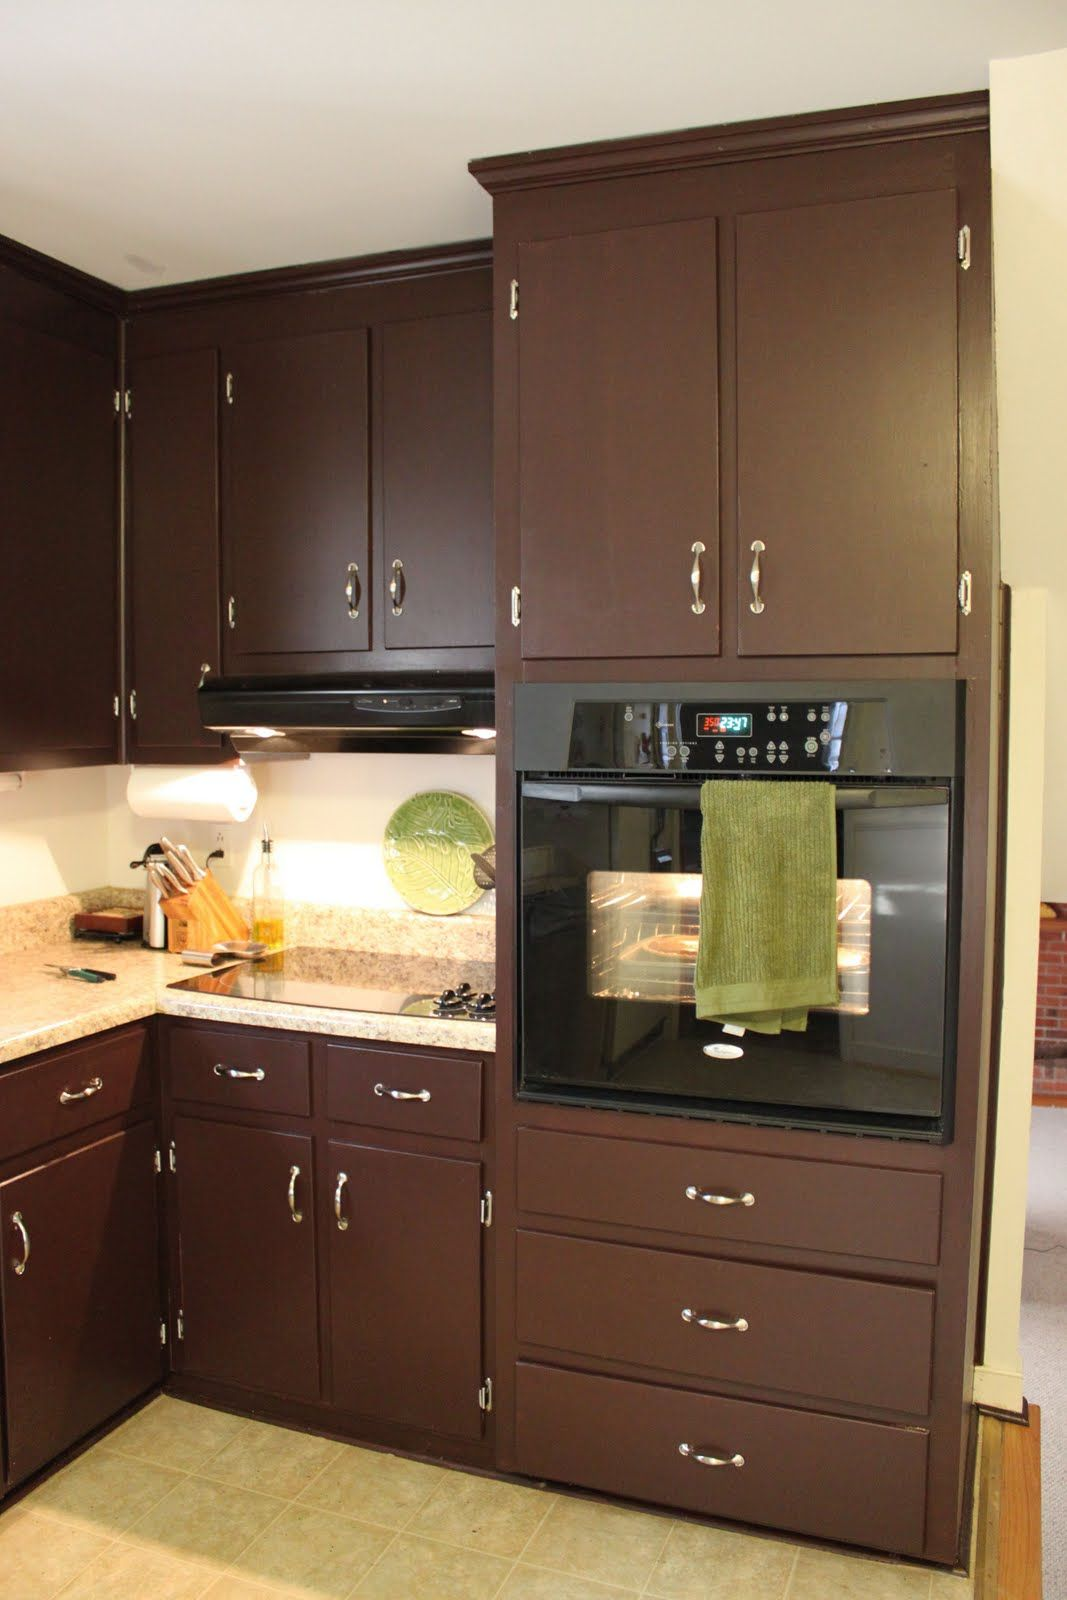 Two Tone Kitchen Cabinets Ideas Concept With Modern Door Design And Painted Combining Color Like In This Images Picture Victorian Brown Black